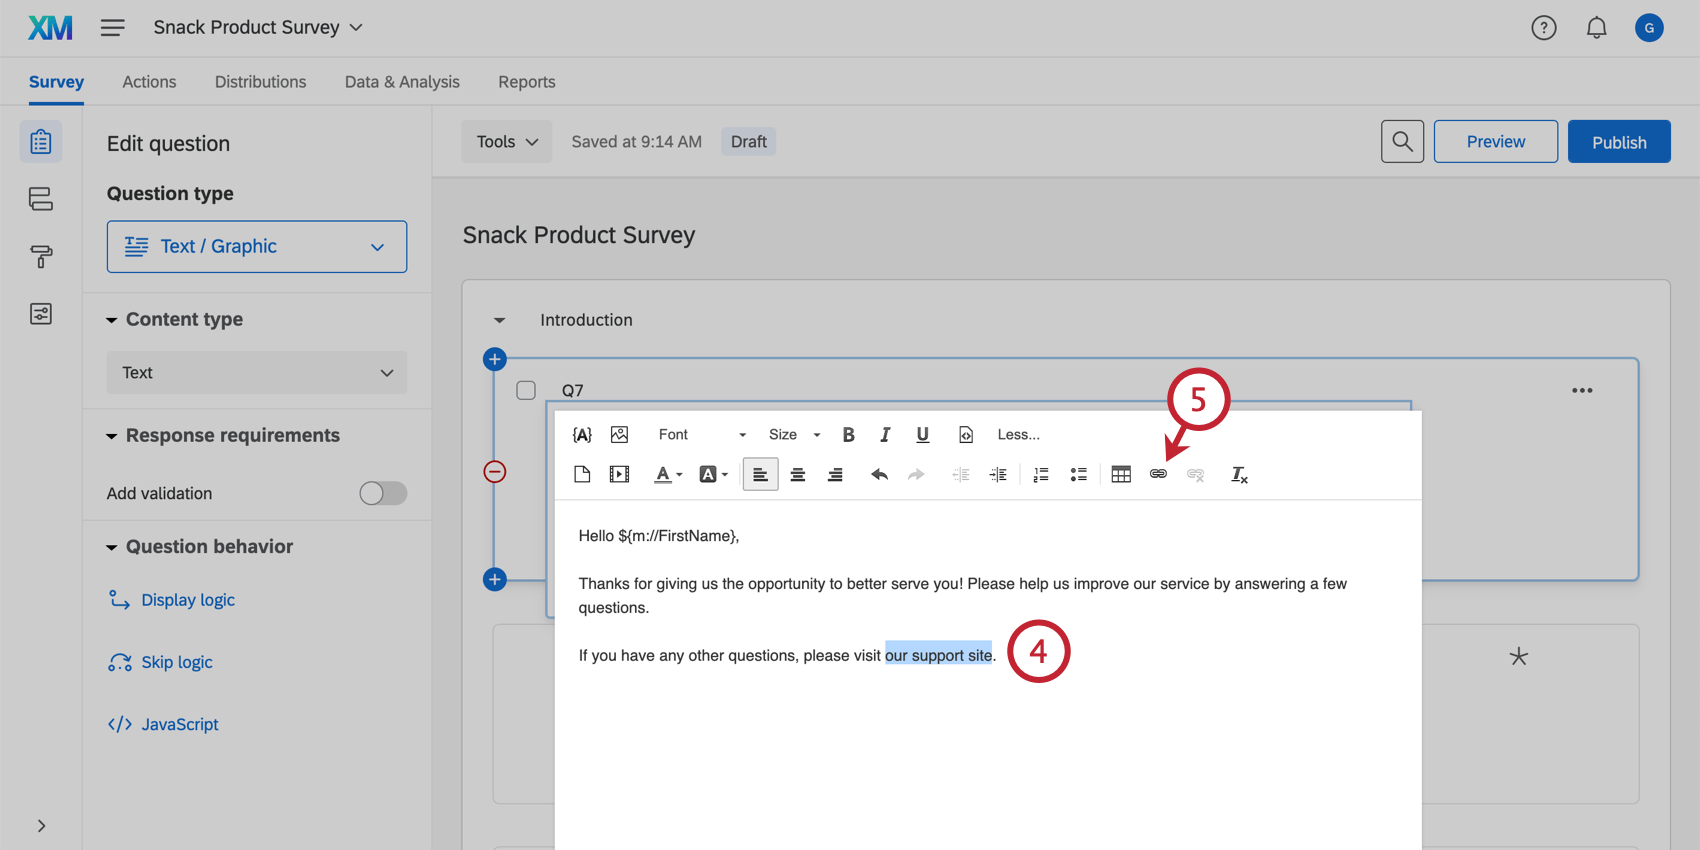 Highlighting the our support site text in order to add a hyperlink; hyperlink button is highlighted in the rich content editor